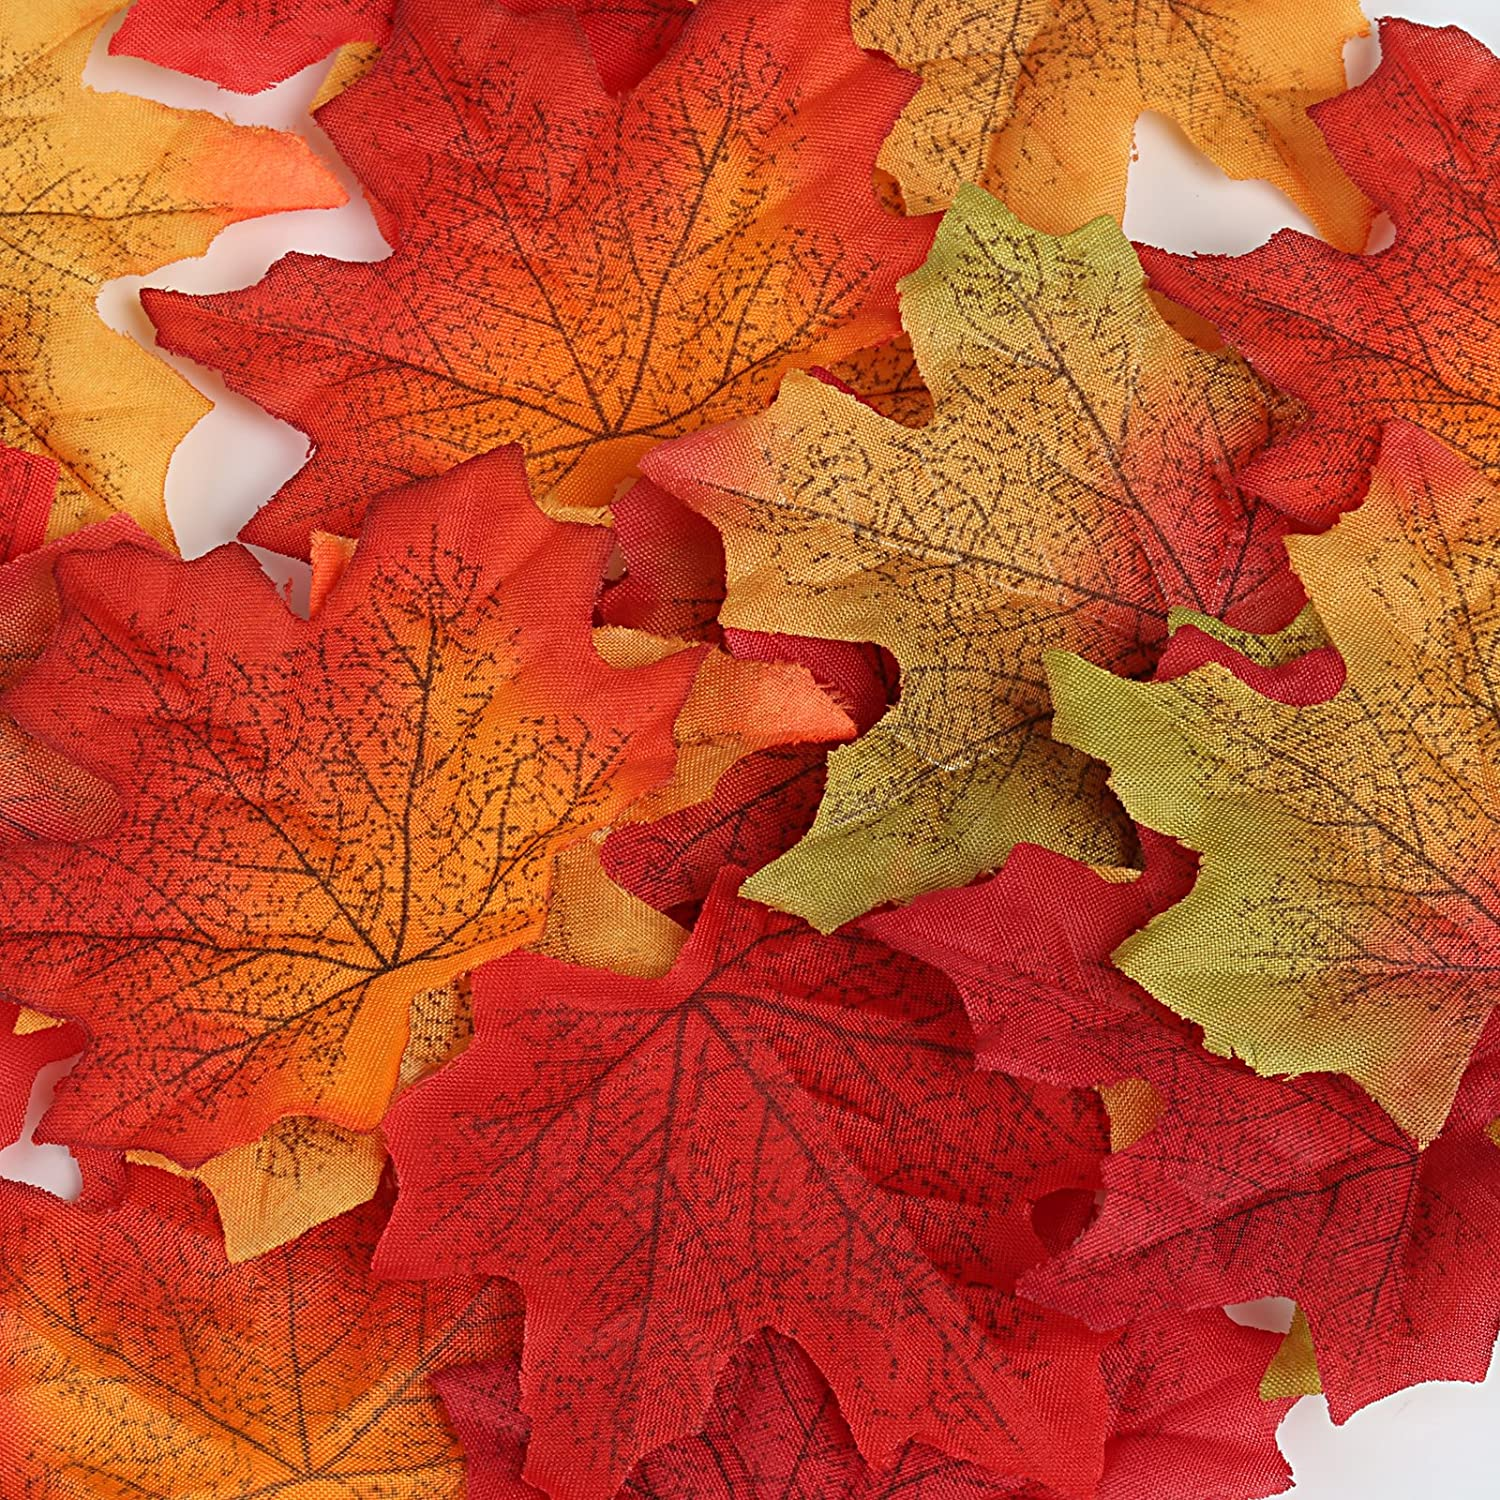 Naler Artificial Maple Leaves, Fall Colored Silk Maple Leaves Autumn Fall Leaves Bulk for Art Scrapbooking, Weddings, Autumn Party, Events and Decorating, 300pcs